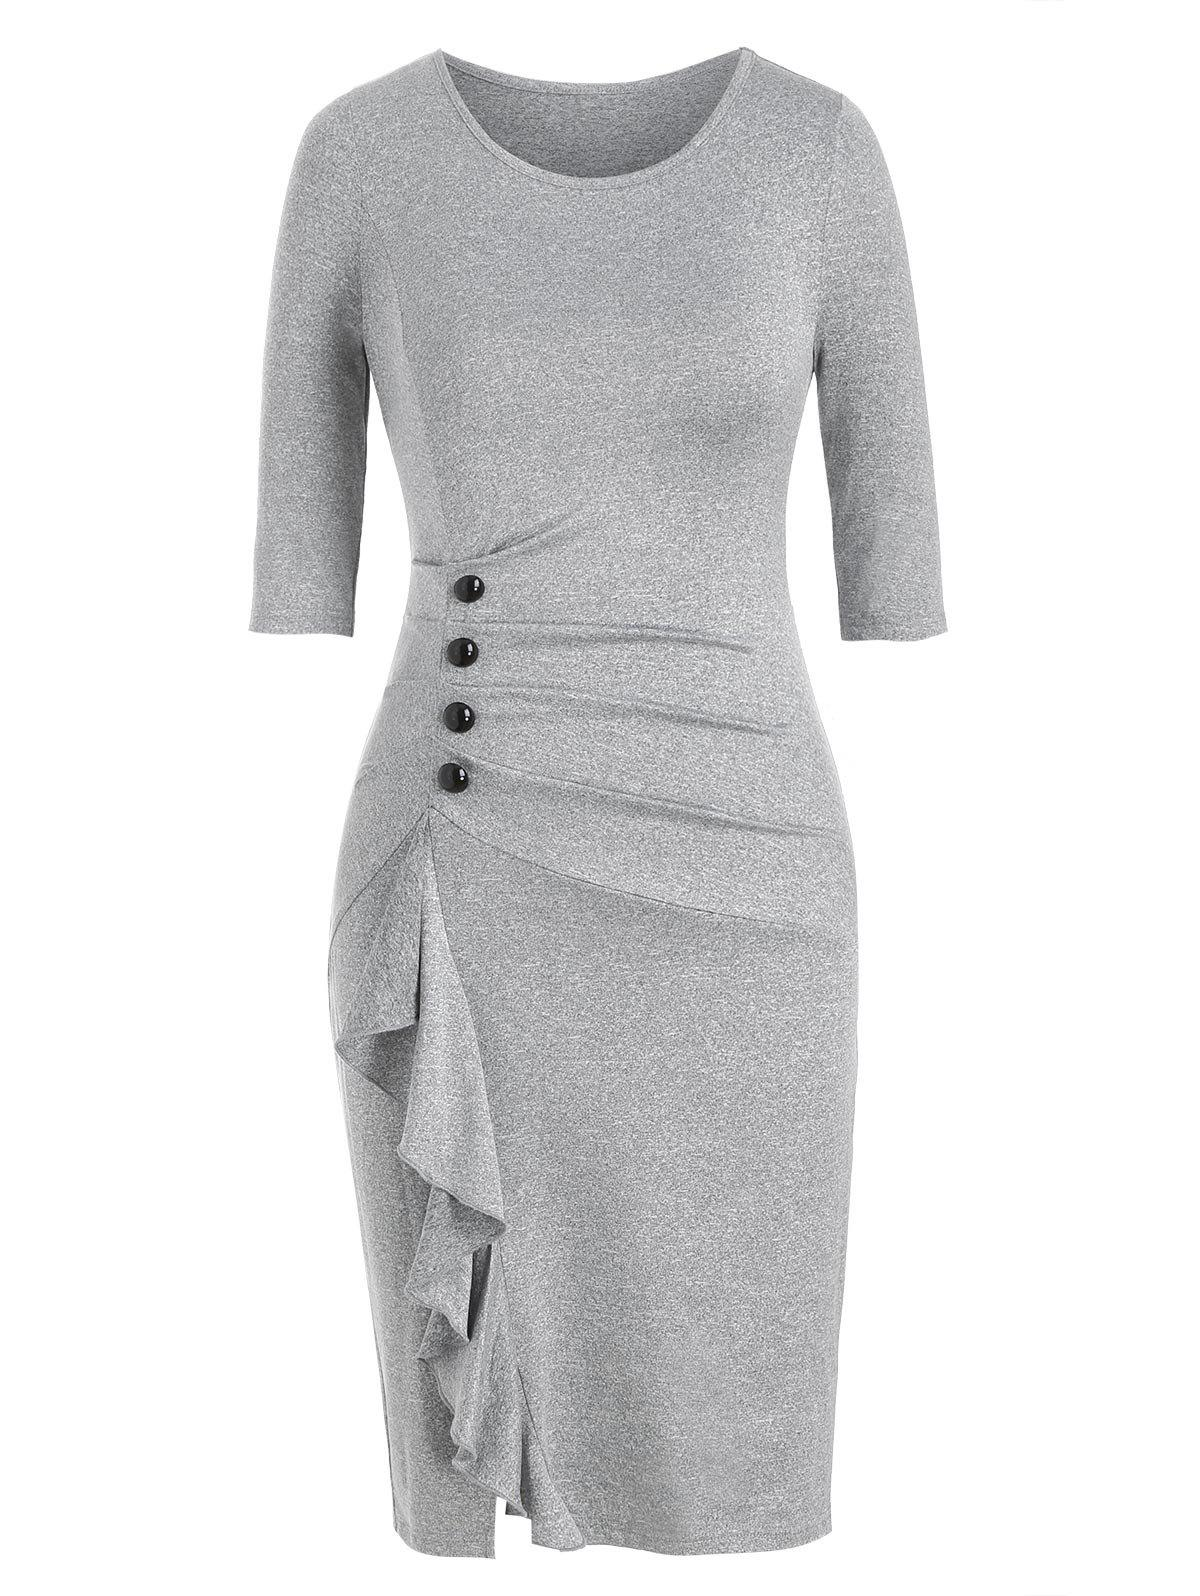 Button Ruched Marled Sheath Dress - LIGHT GRAY XL